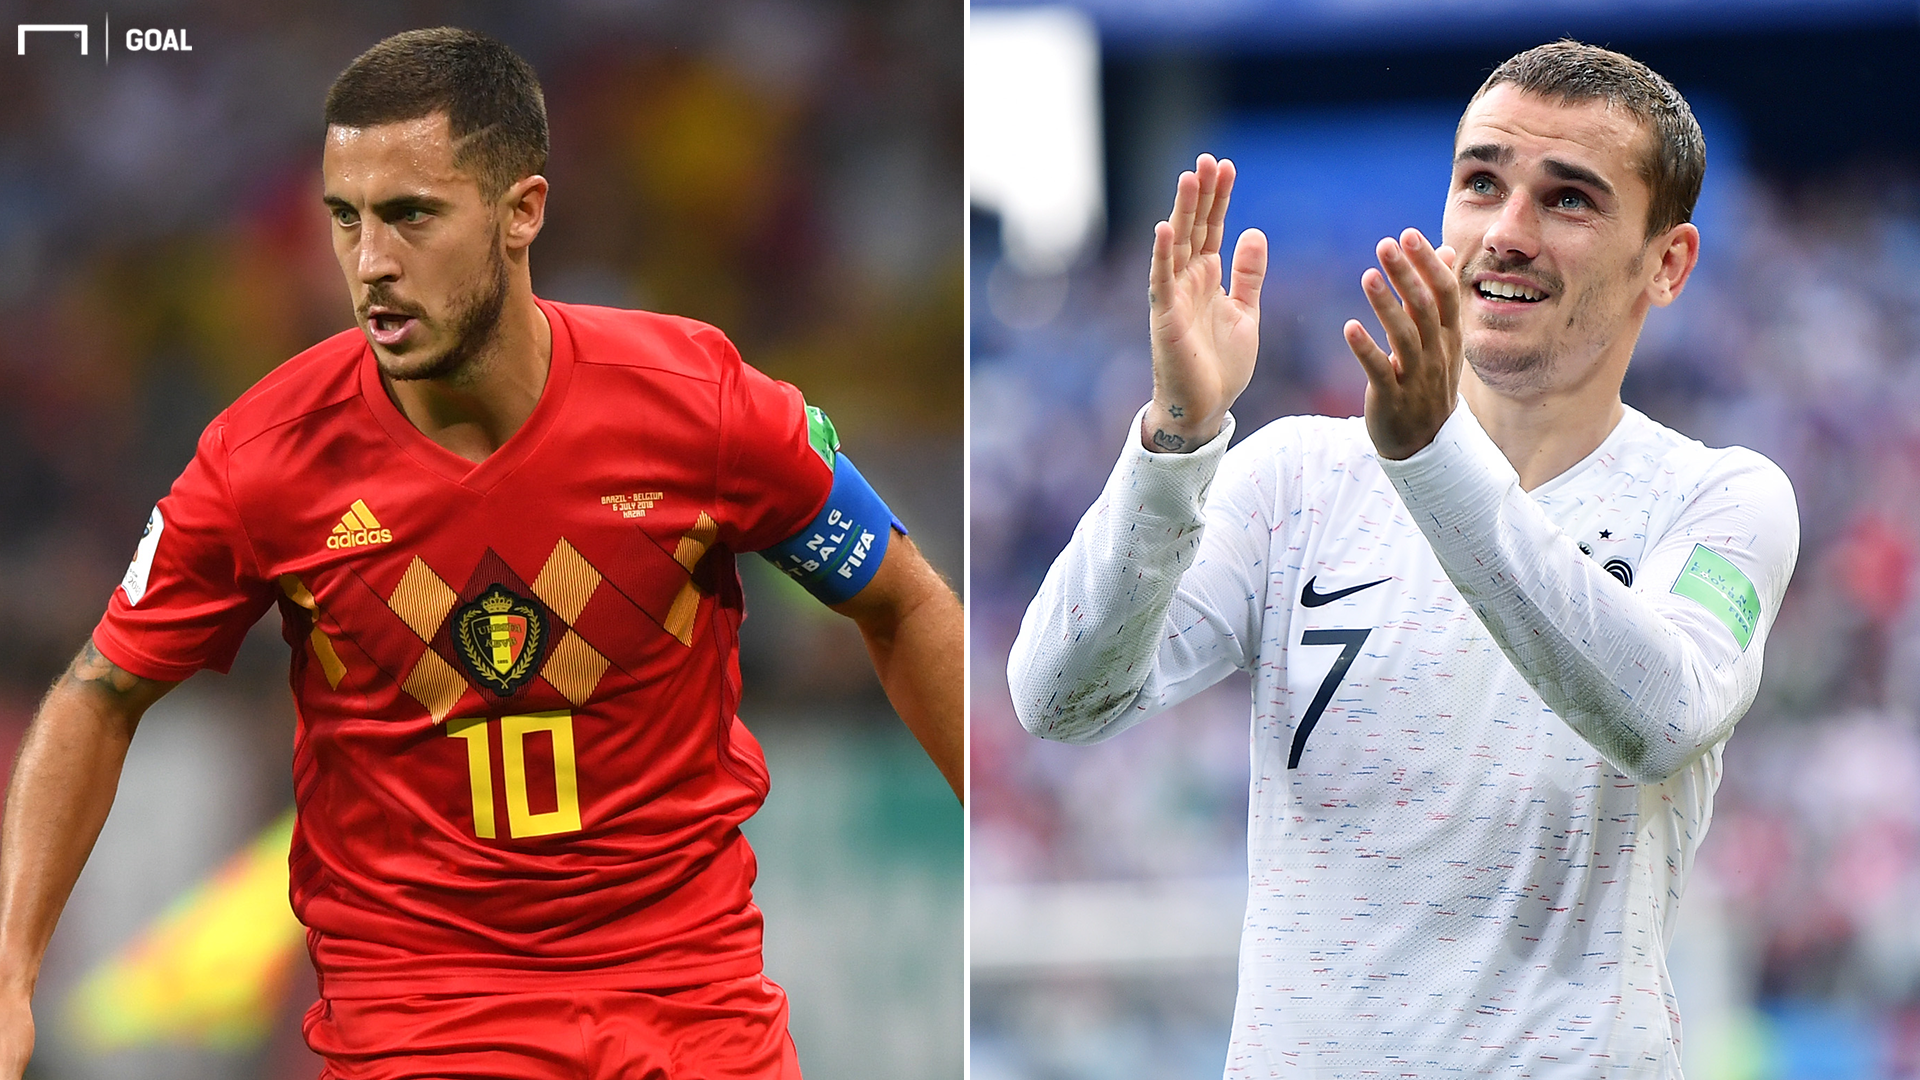 France vs Belgium: Thierry Henry is an enemy - Deschamps